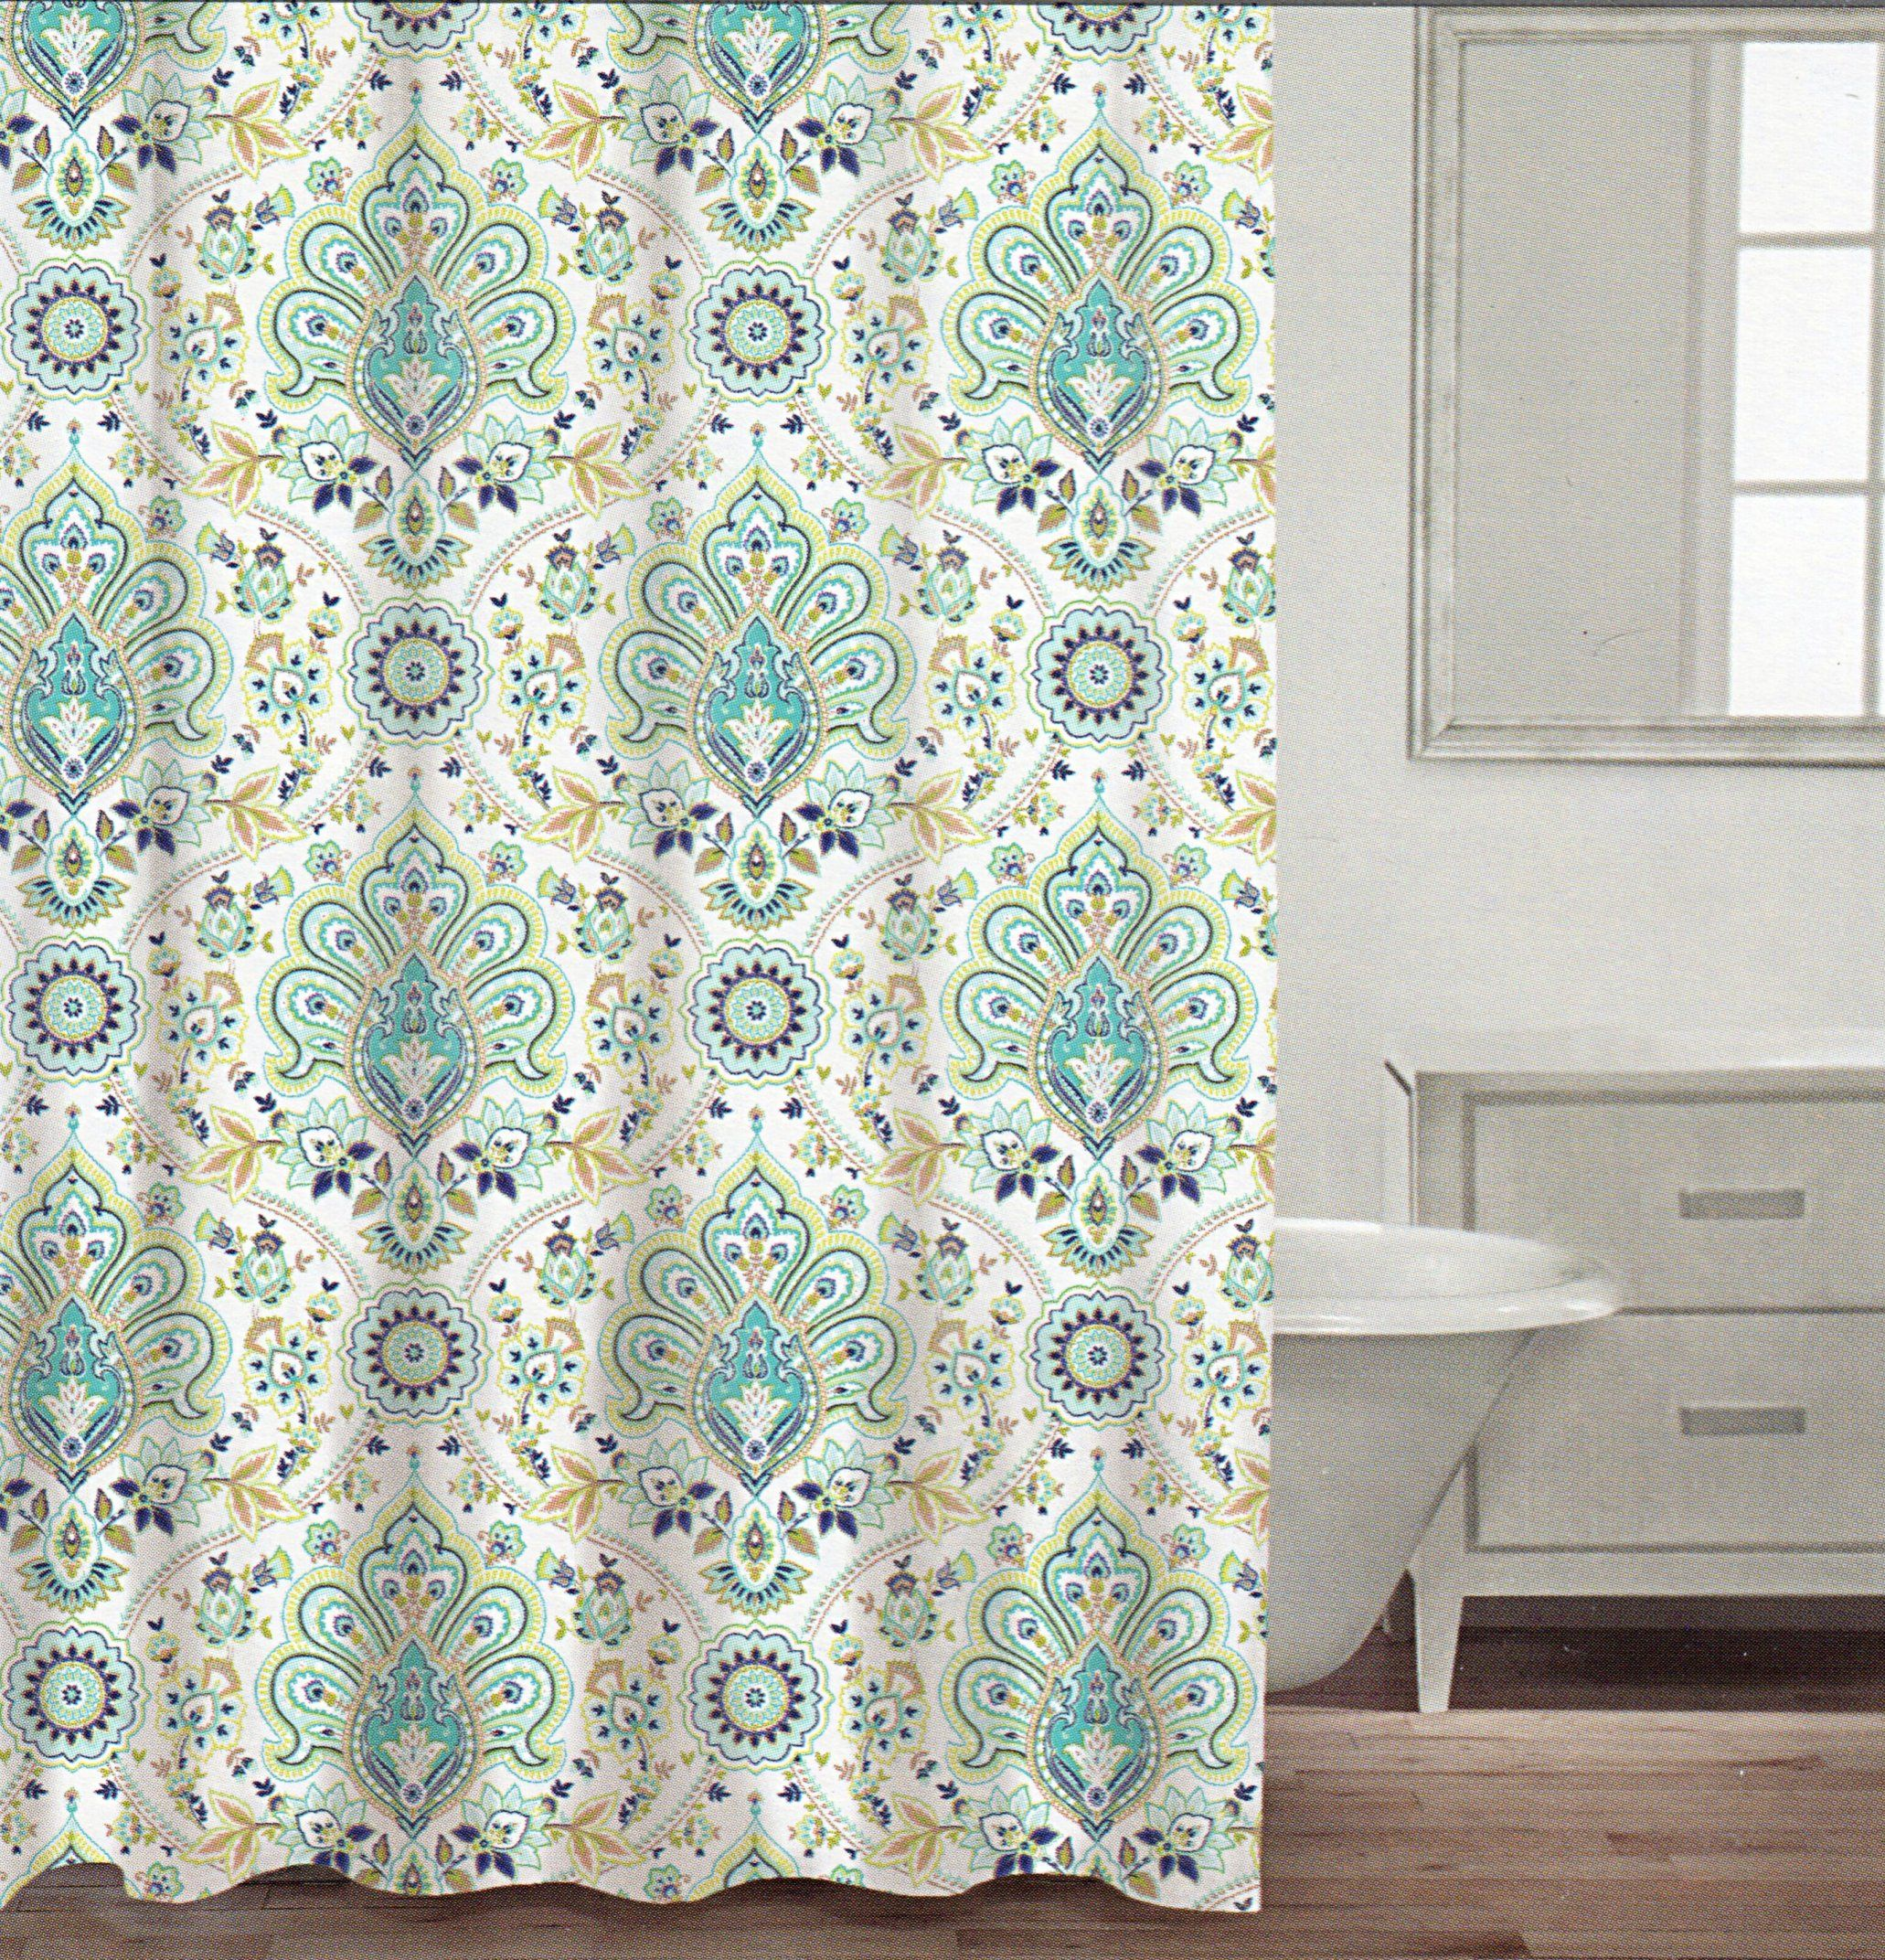 Mint green shower curtain and rugs - Caro Home Cotton Shower Curtain Floral Paisley Medallions Fabric Shower Curtain White Turquoise Green Navy Blue Beige Damask Design